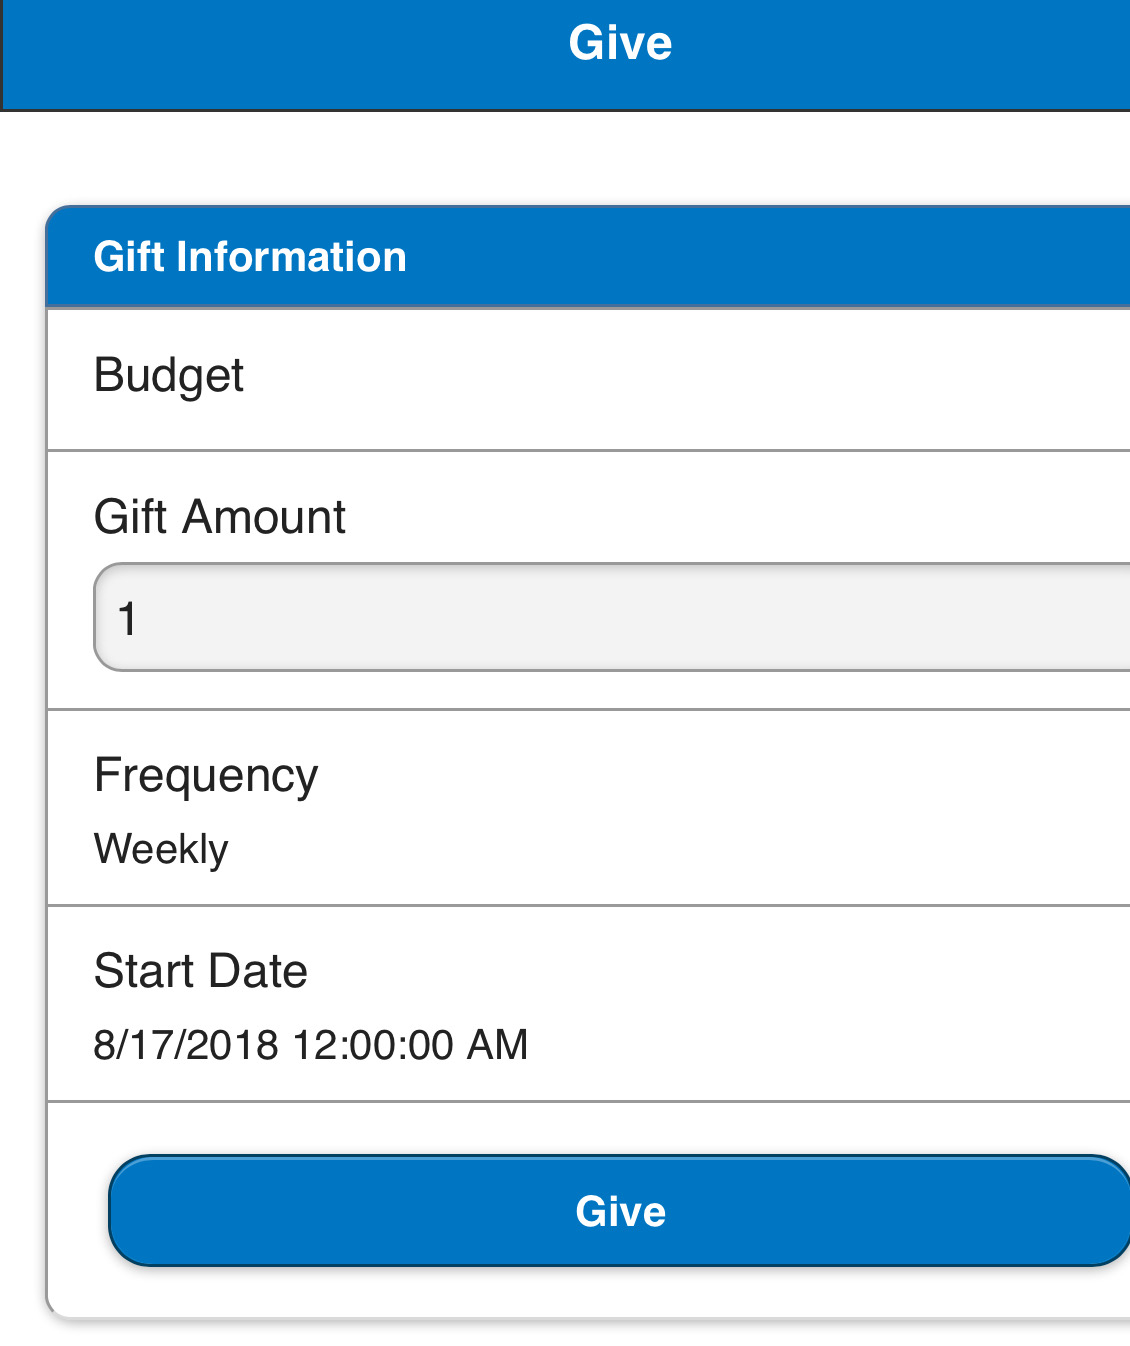 If recurring gift... - * CHoose your recurrence. You can give a one-time, weekly, bi-weekly, monthly, quarterly, or annual gift.* Choose from the calendar the date that you would like your gift submitted.* Tab the blue Give button at the bottom of the screen to process your donation.